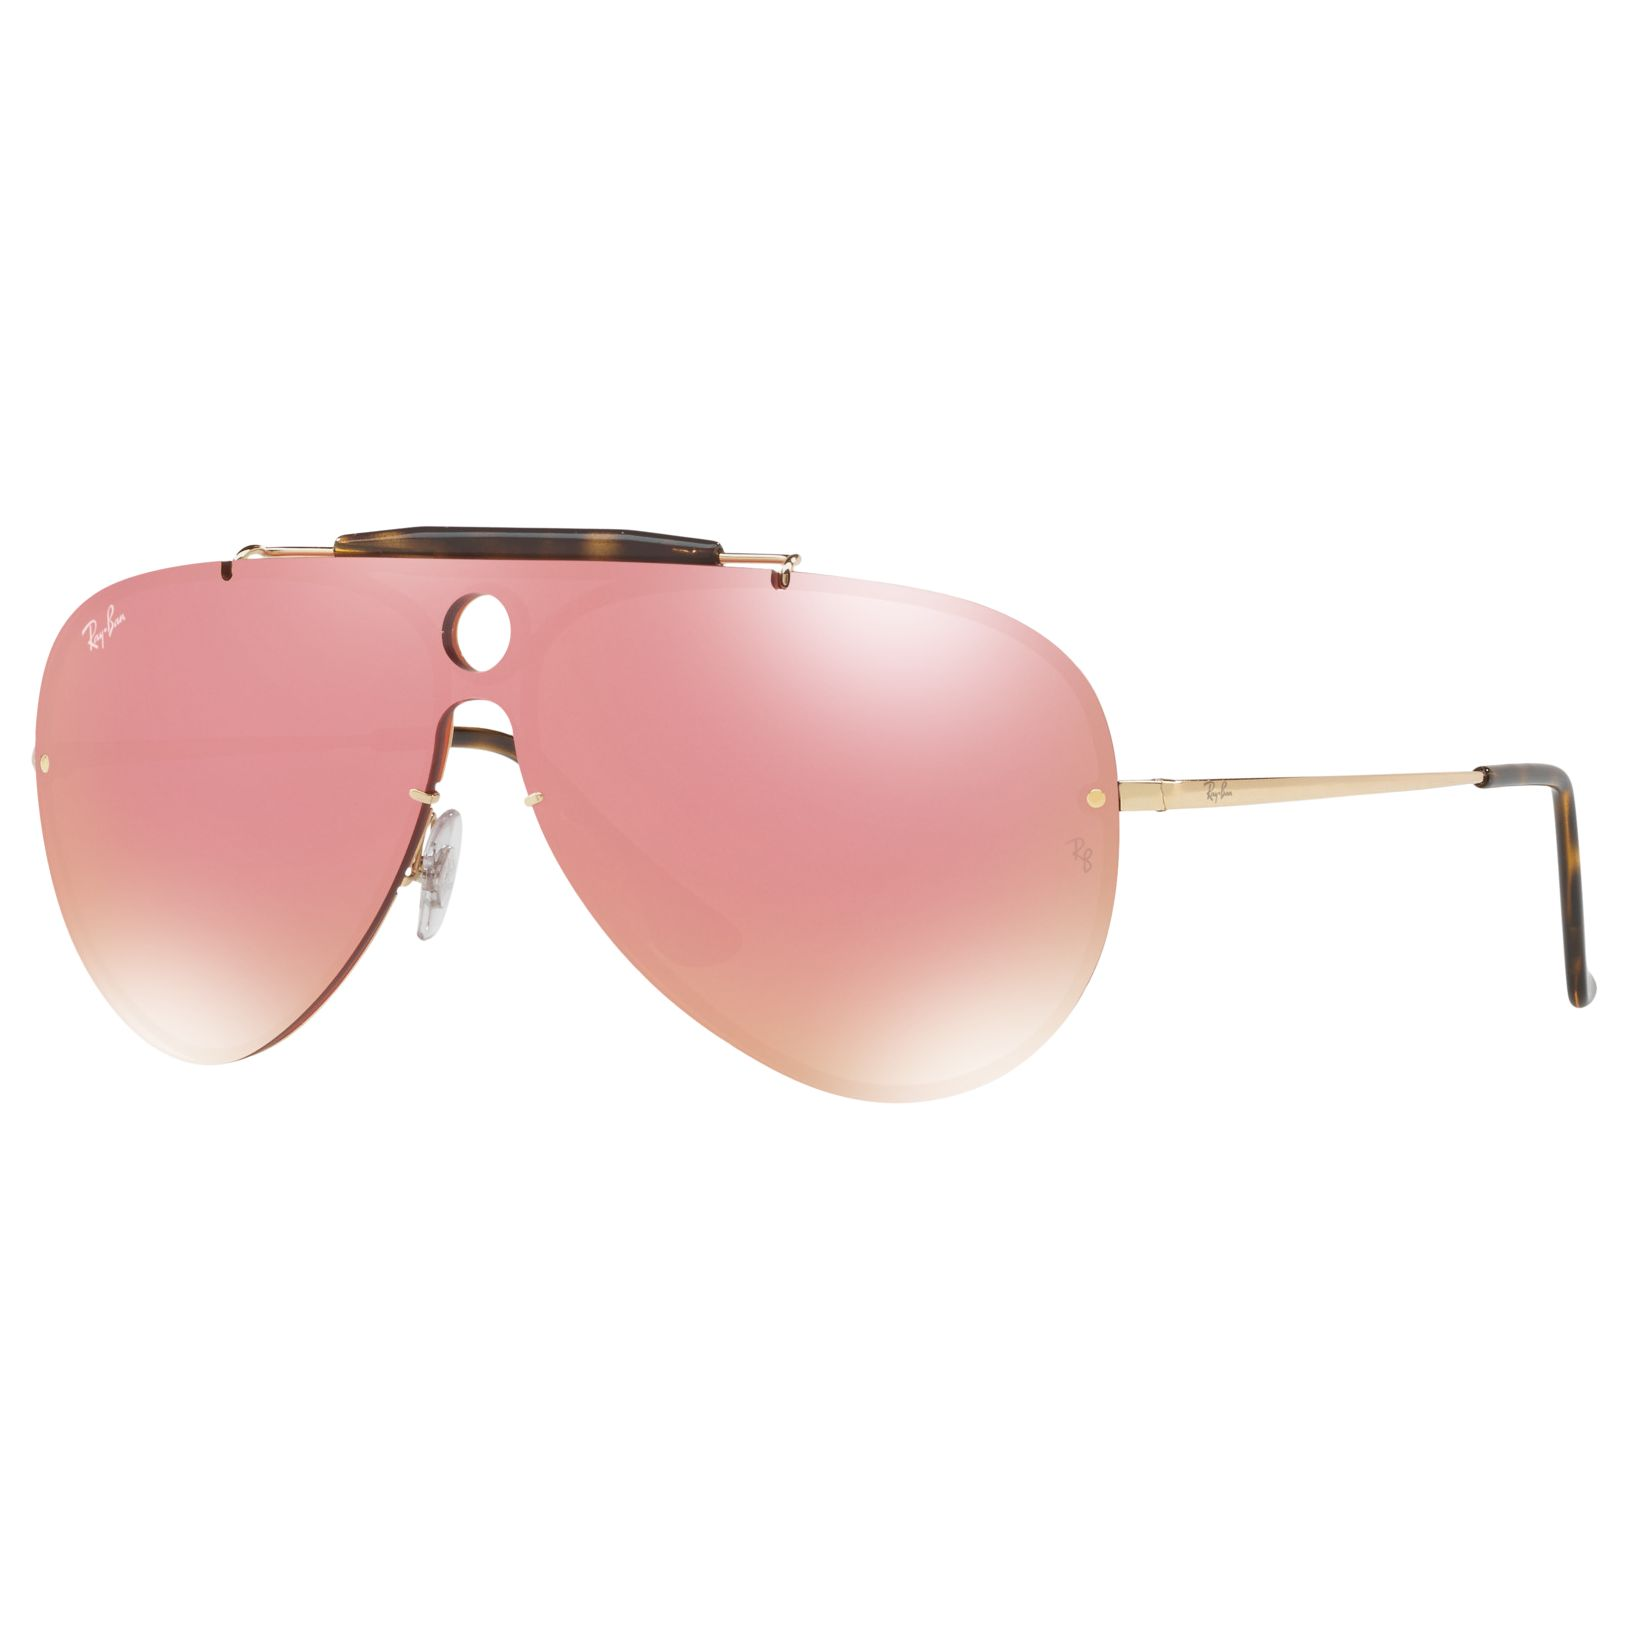 Ray-ban Ray-Ban RB3581N Unisex Pilot Sunglasses, Gold/Pink